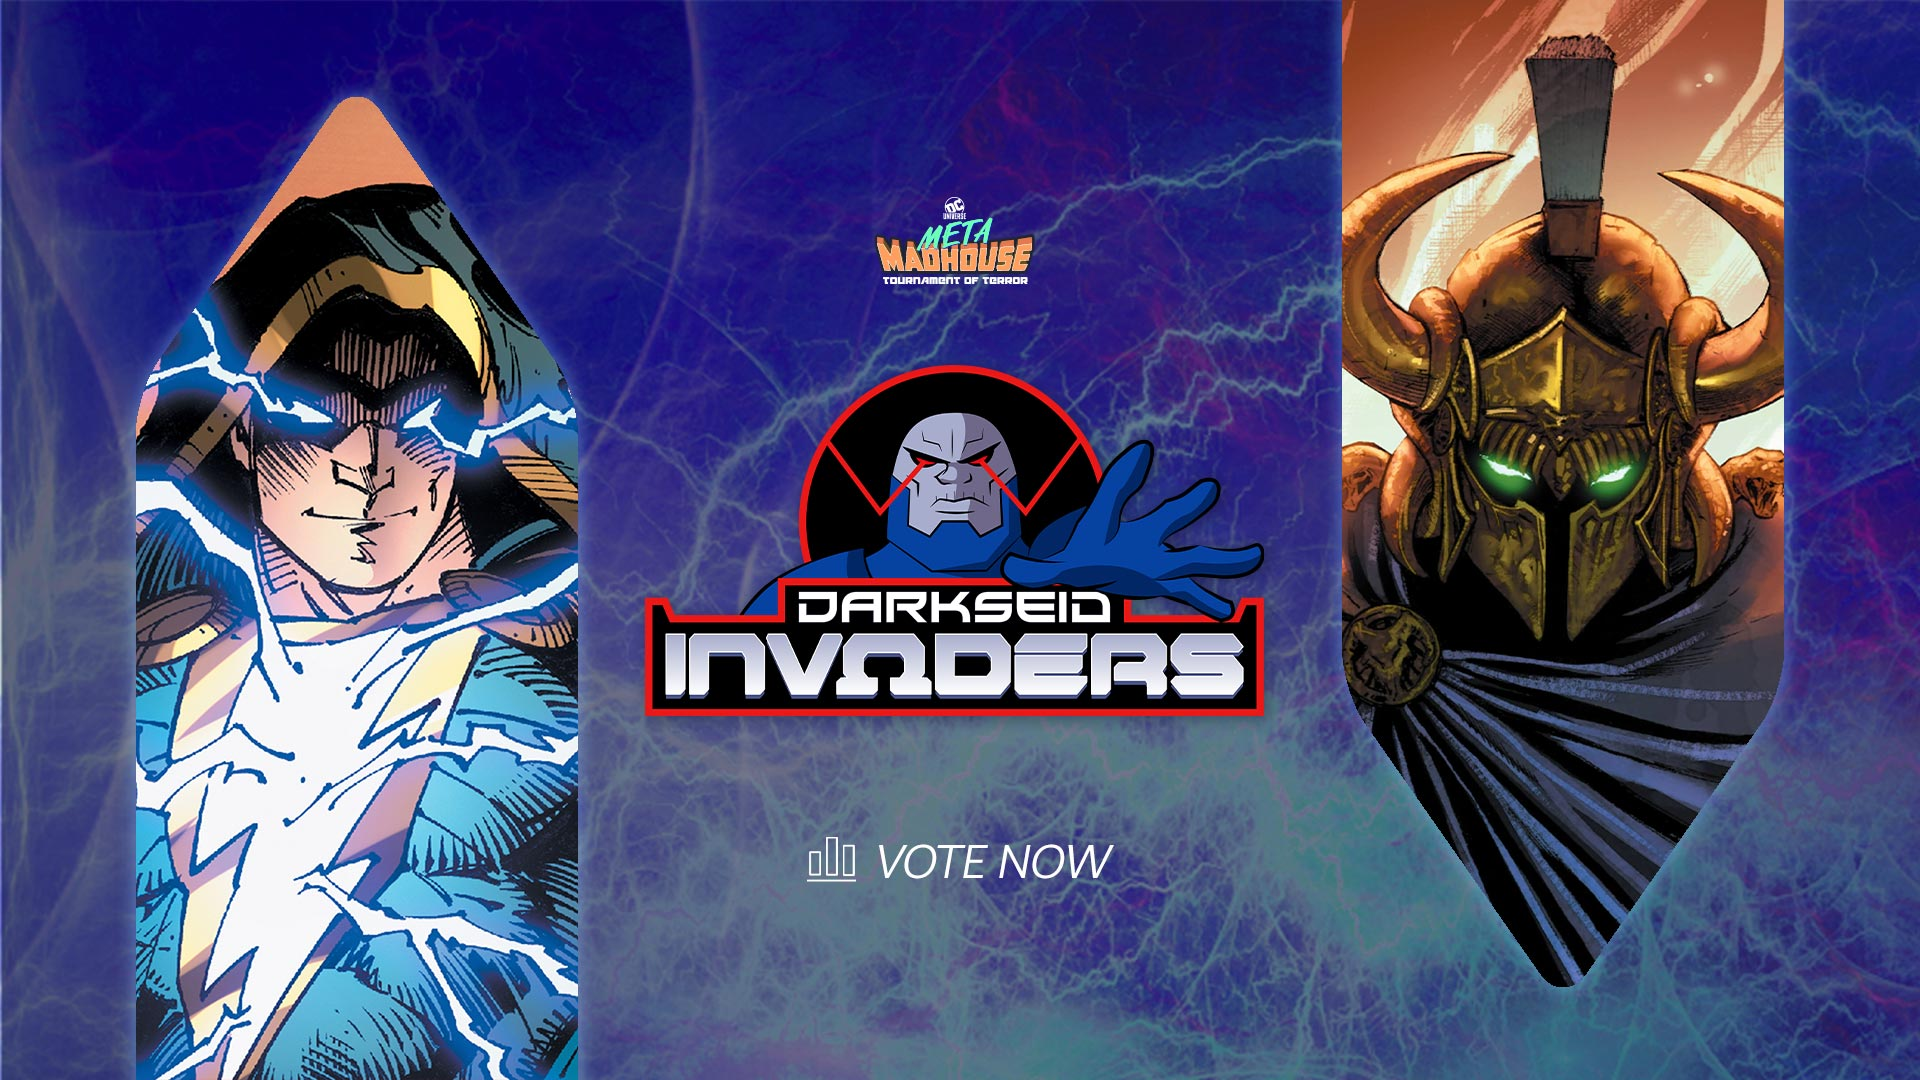 MM_DARKSEID-VOTE_2-playershero-c2.jpg